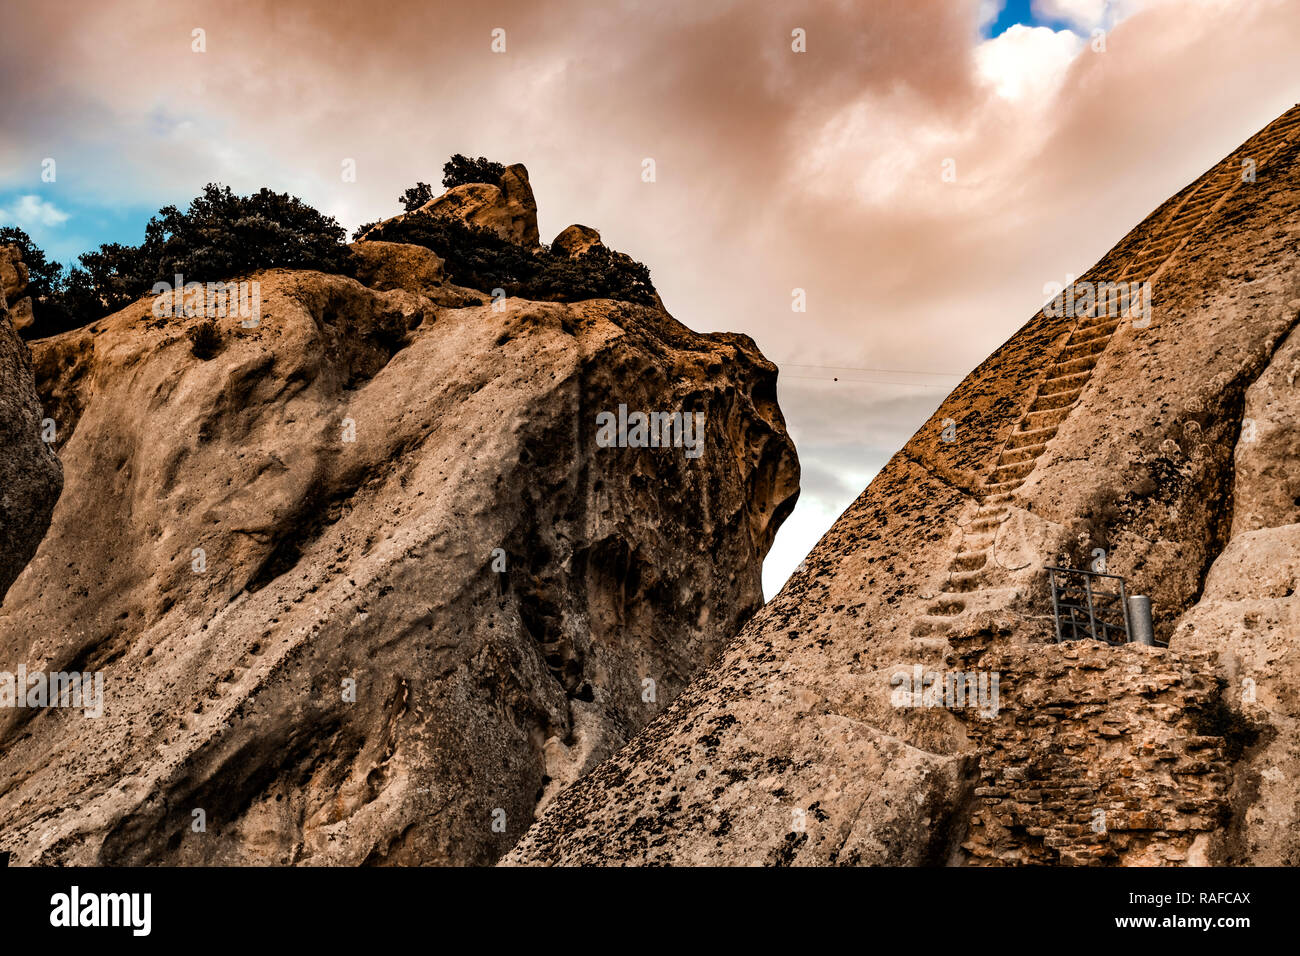 Italy Basilicata Dolomiti Lucane Castelmezzano remains of the castle ladder in the rock - Stock Image